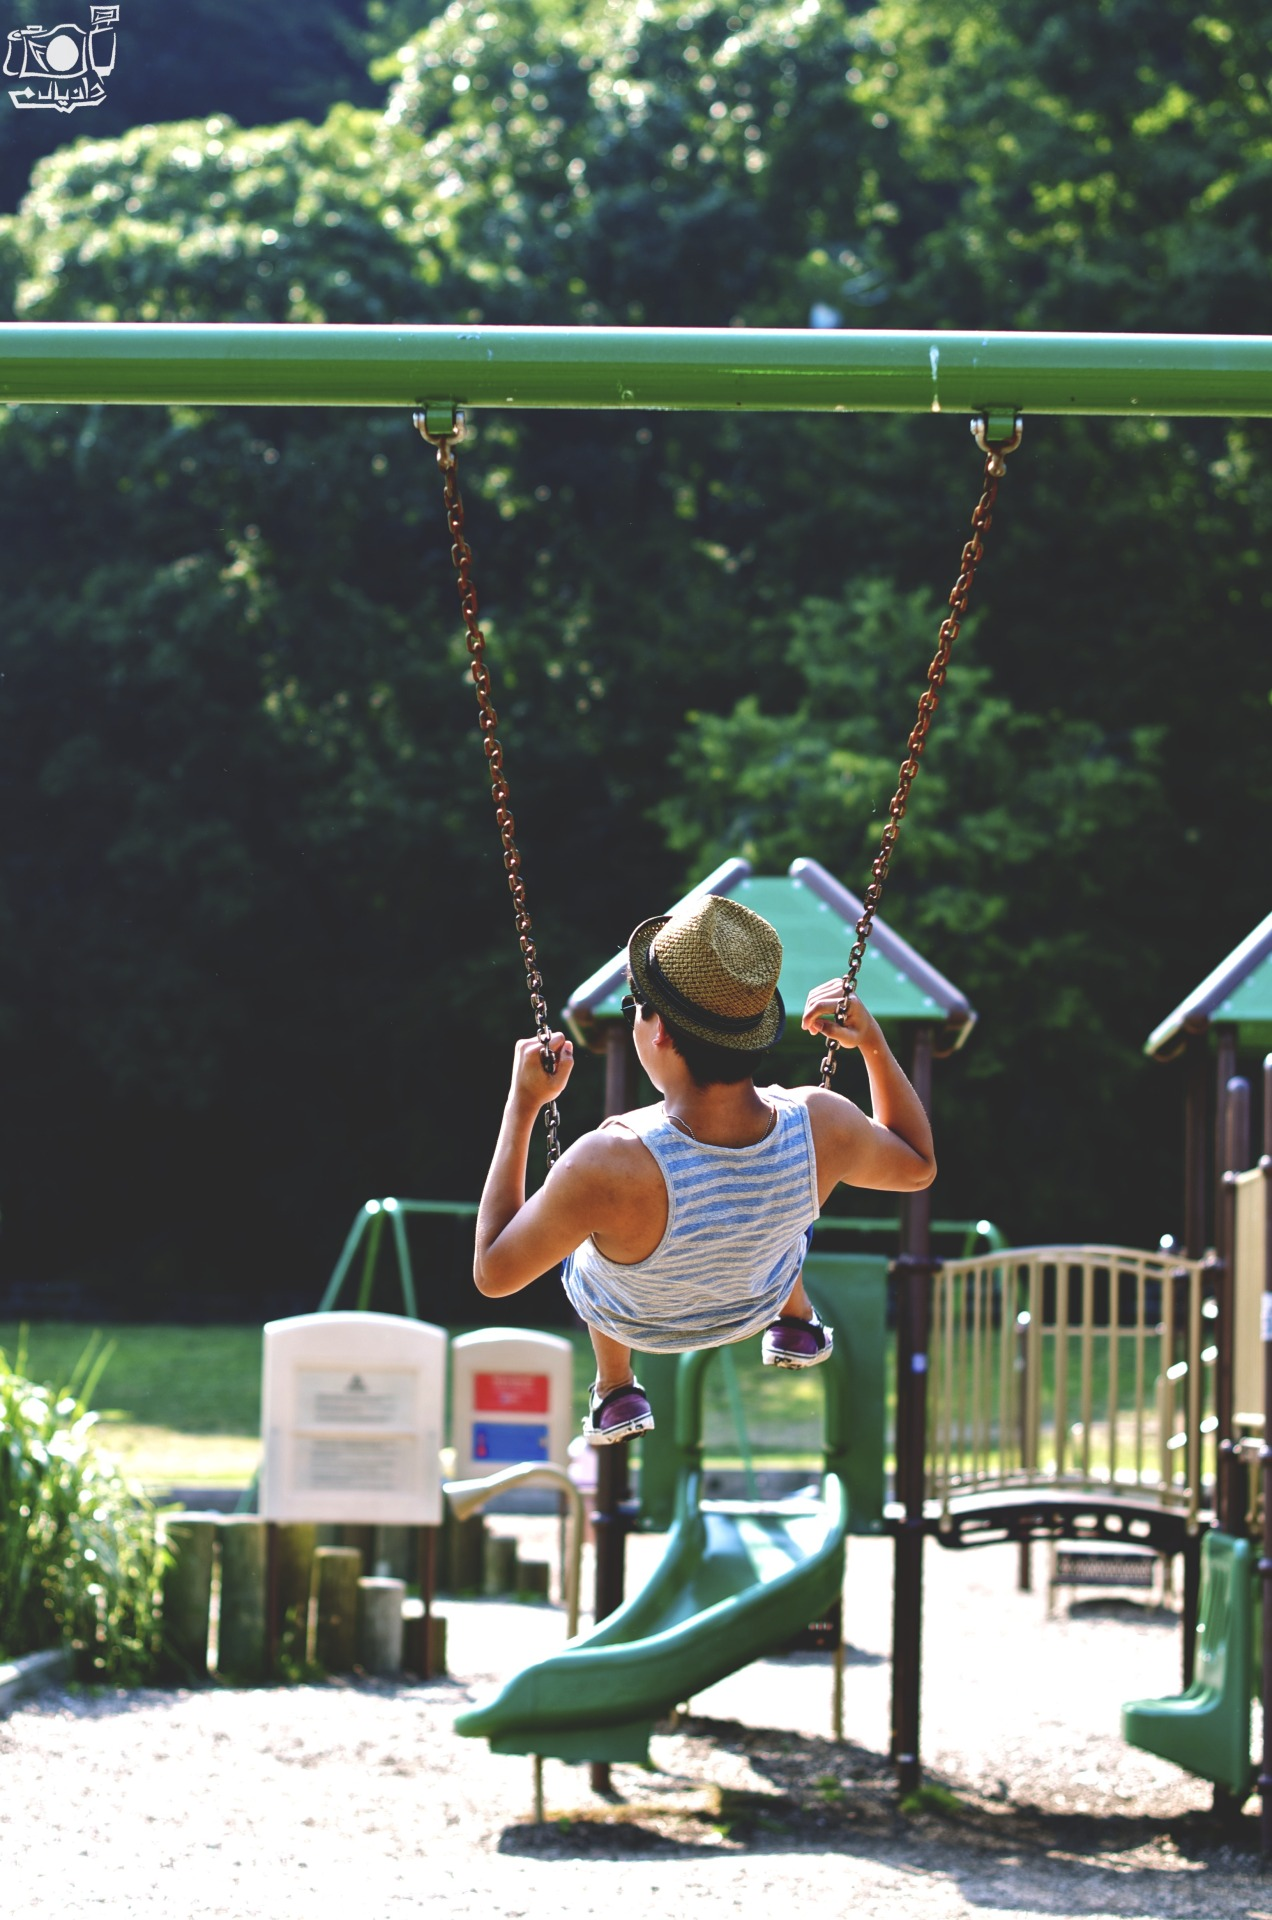 Swing | Fort Lee, NJ.